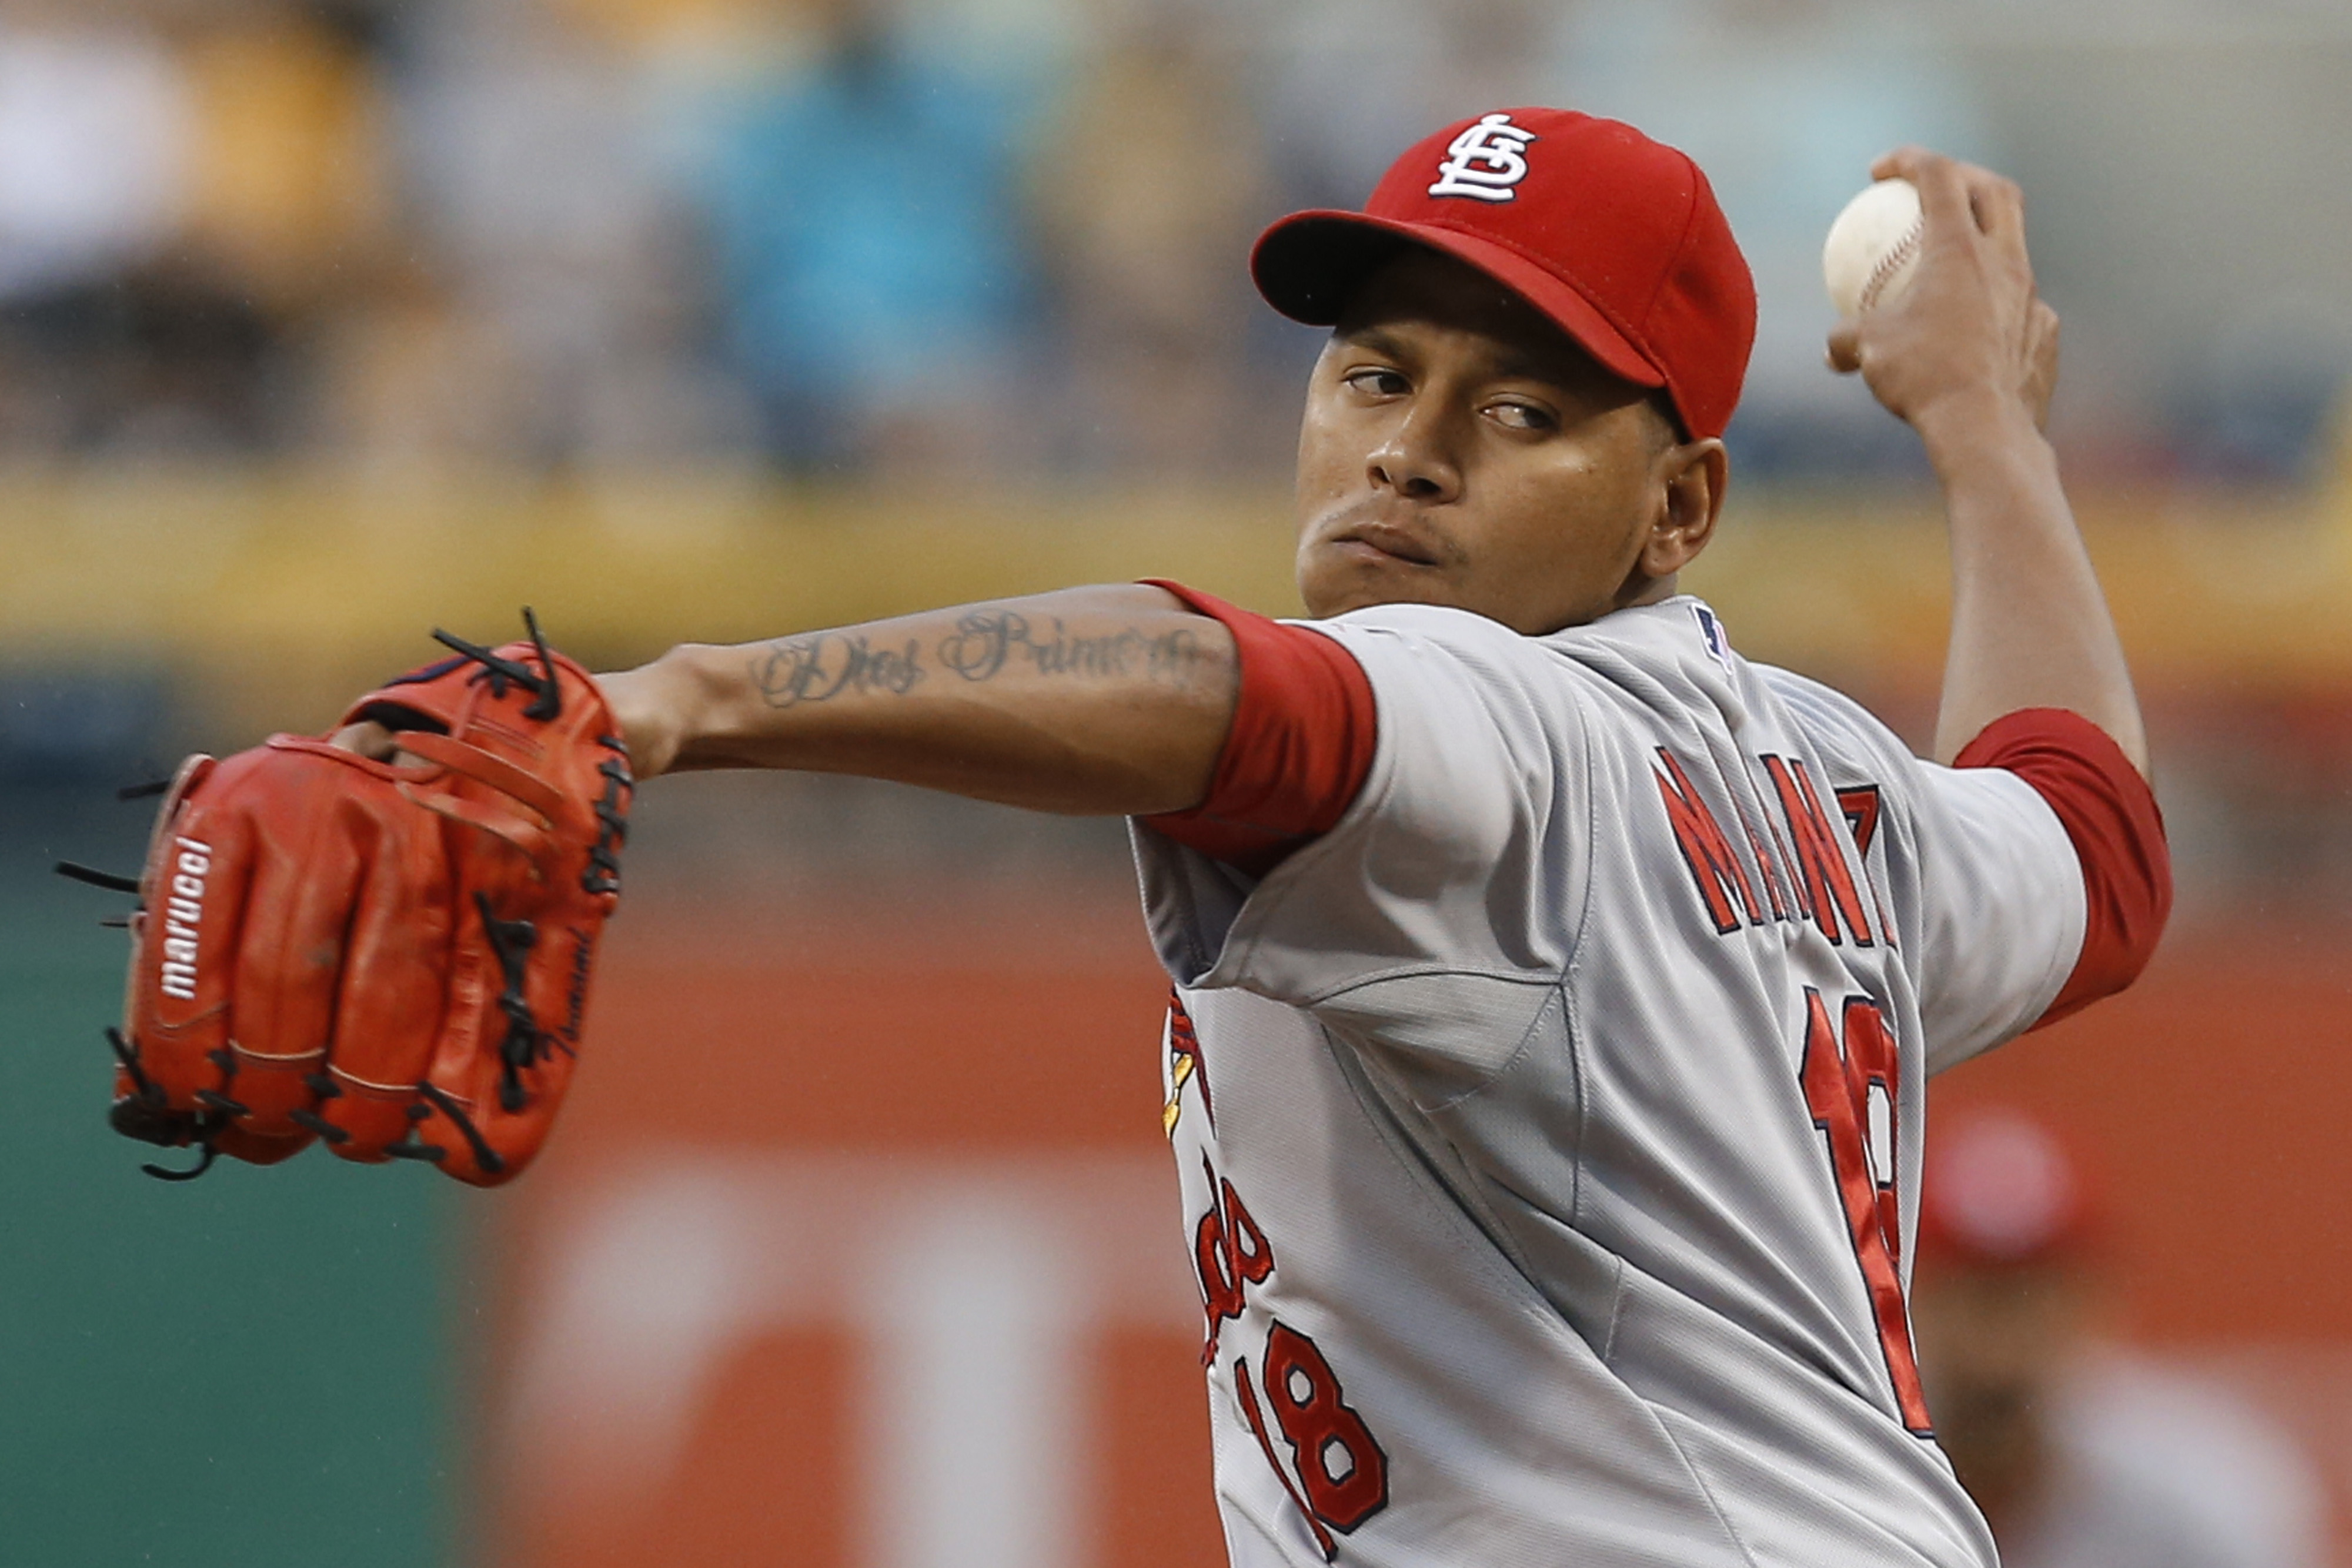 St. Louis Cardinals starting pitcher Carlos Martinez throws against the Pittsburgh Pirates during the first inning of a baseball game, Thursday, July 9, 2015, in Pittsburgh. (AP Photo/Keith Srakocic)